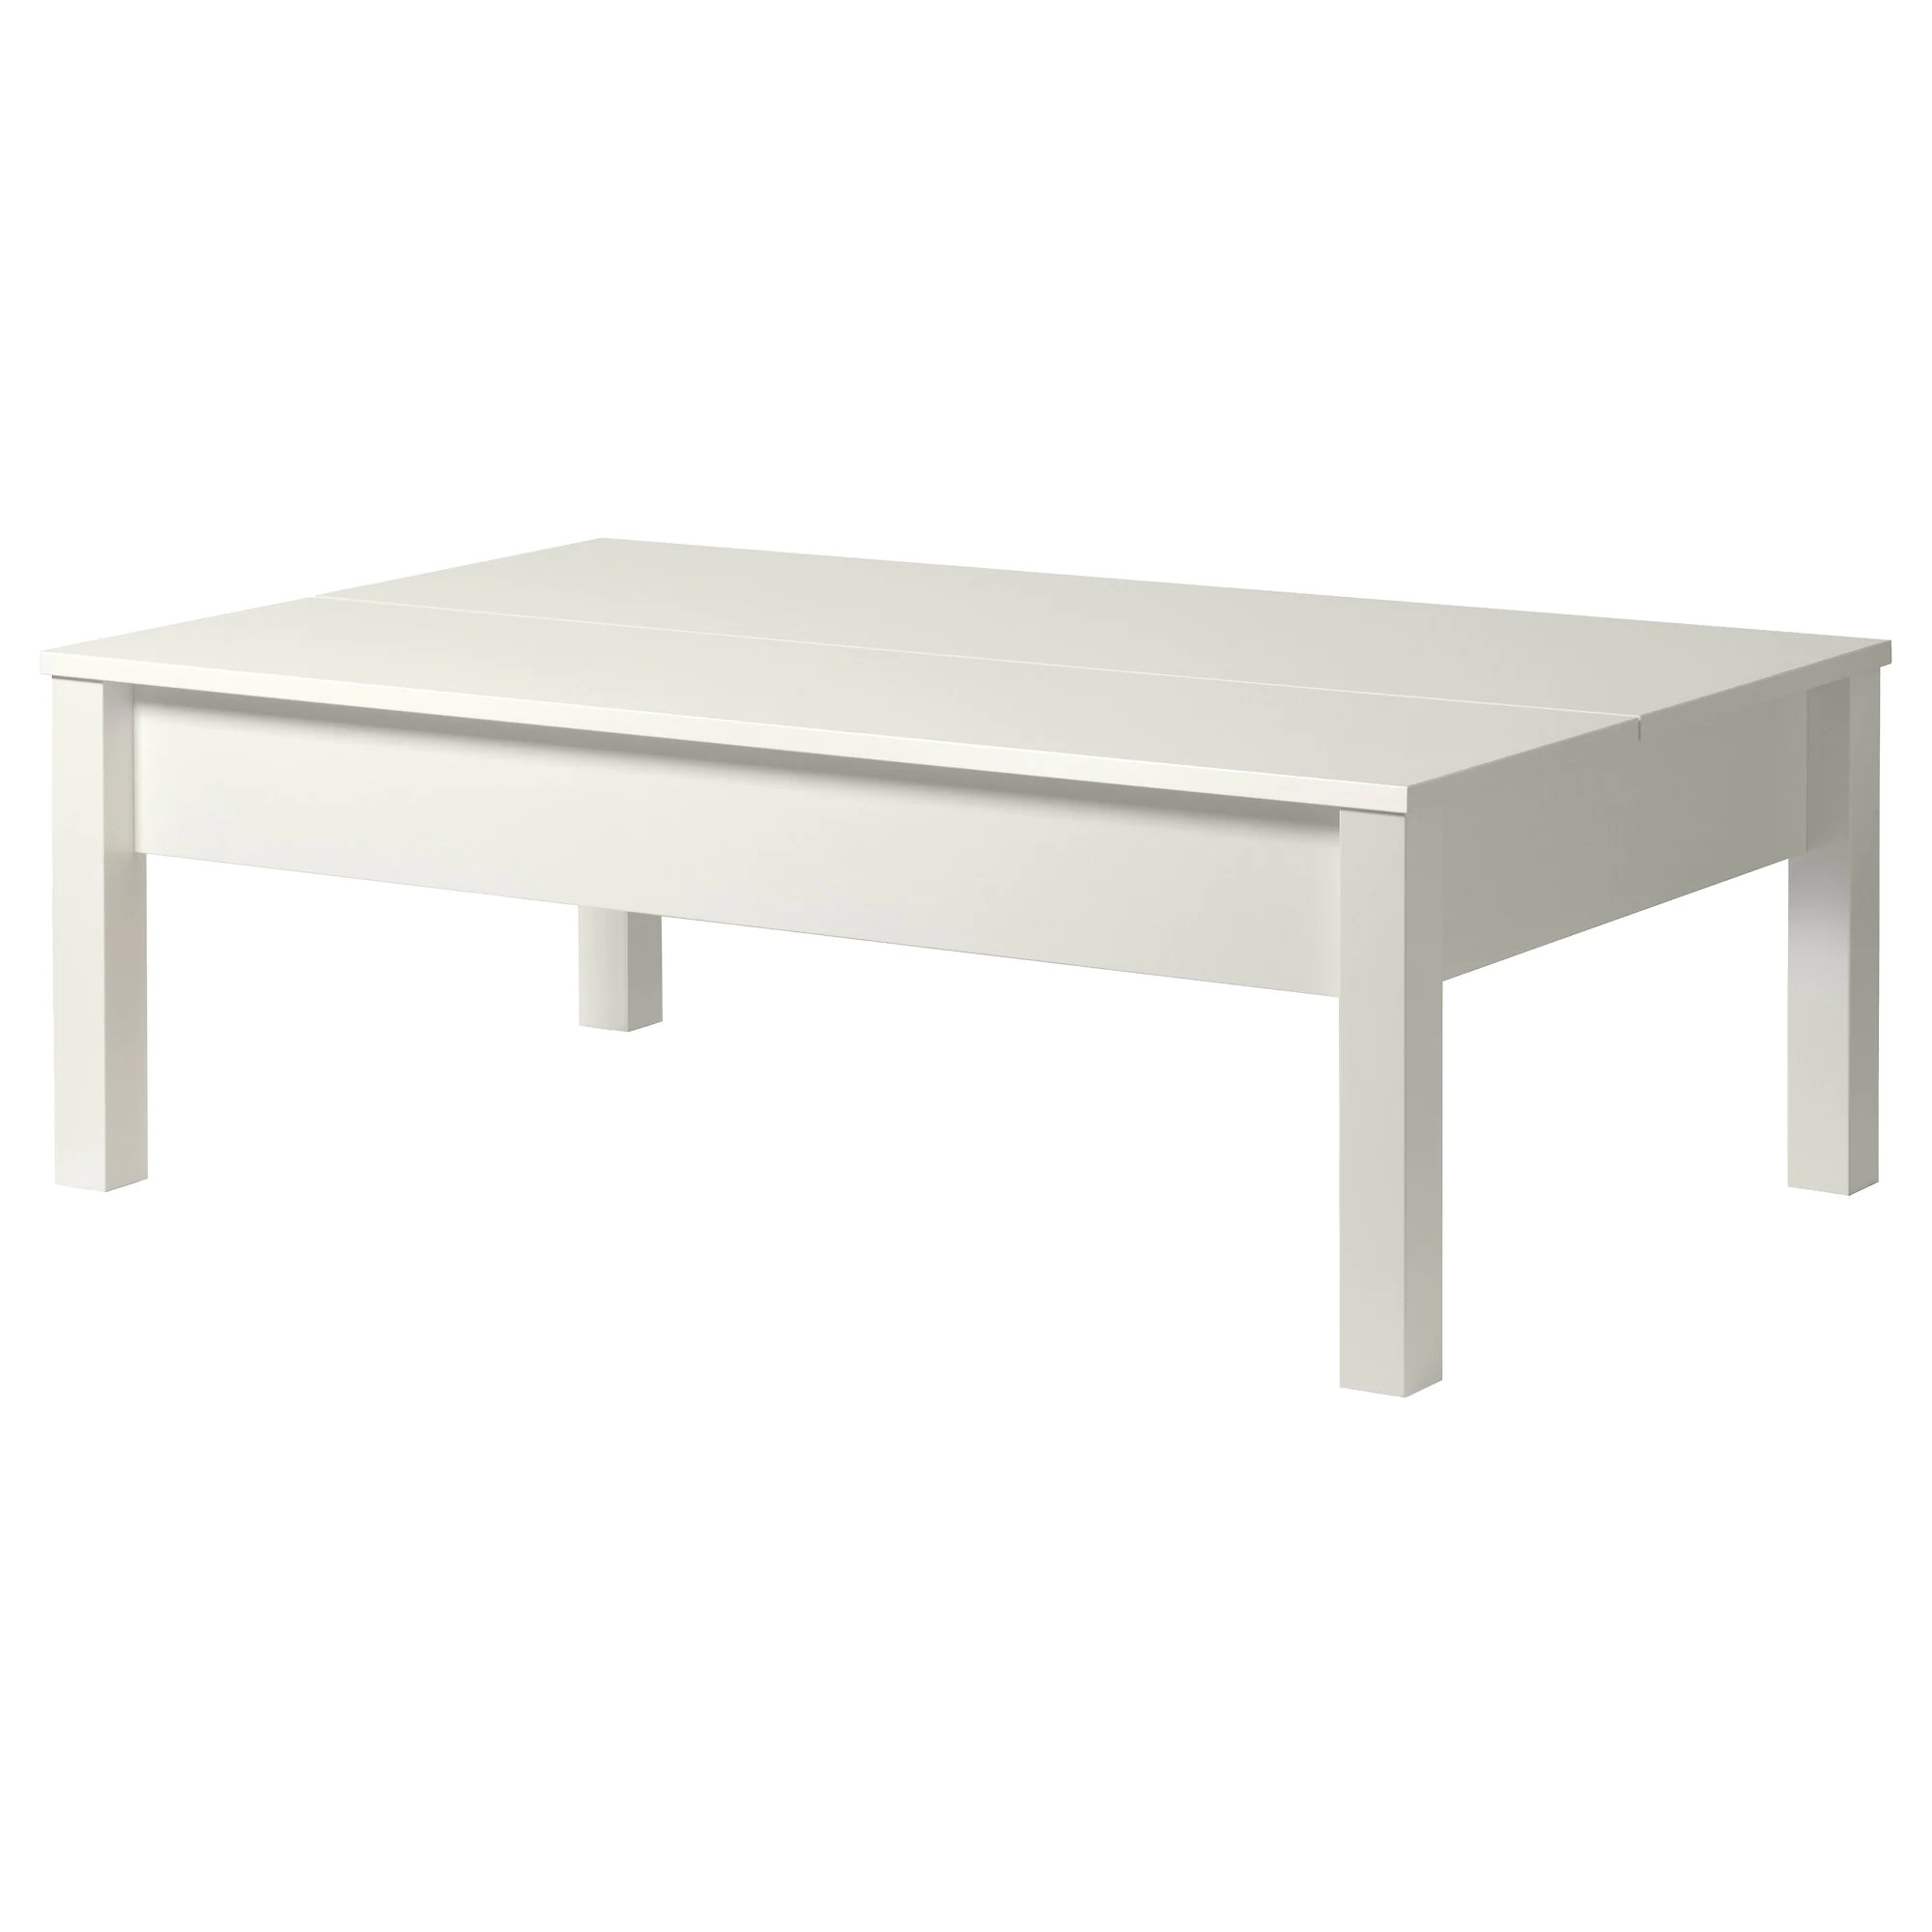 Table Basse Scandinave Ikea Table Basse Trulstorp Blanc